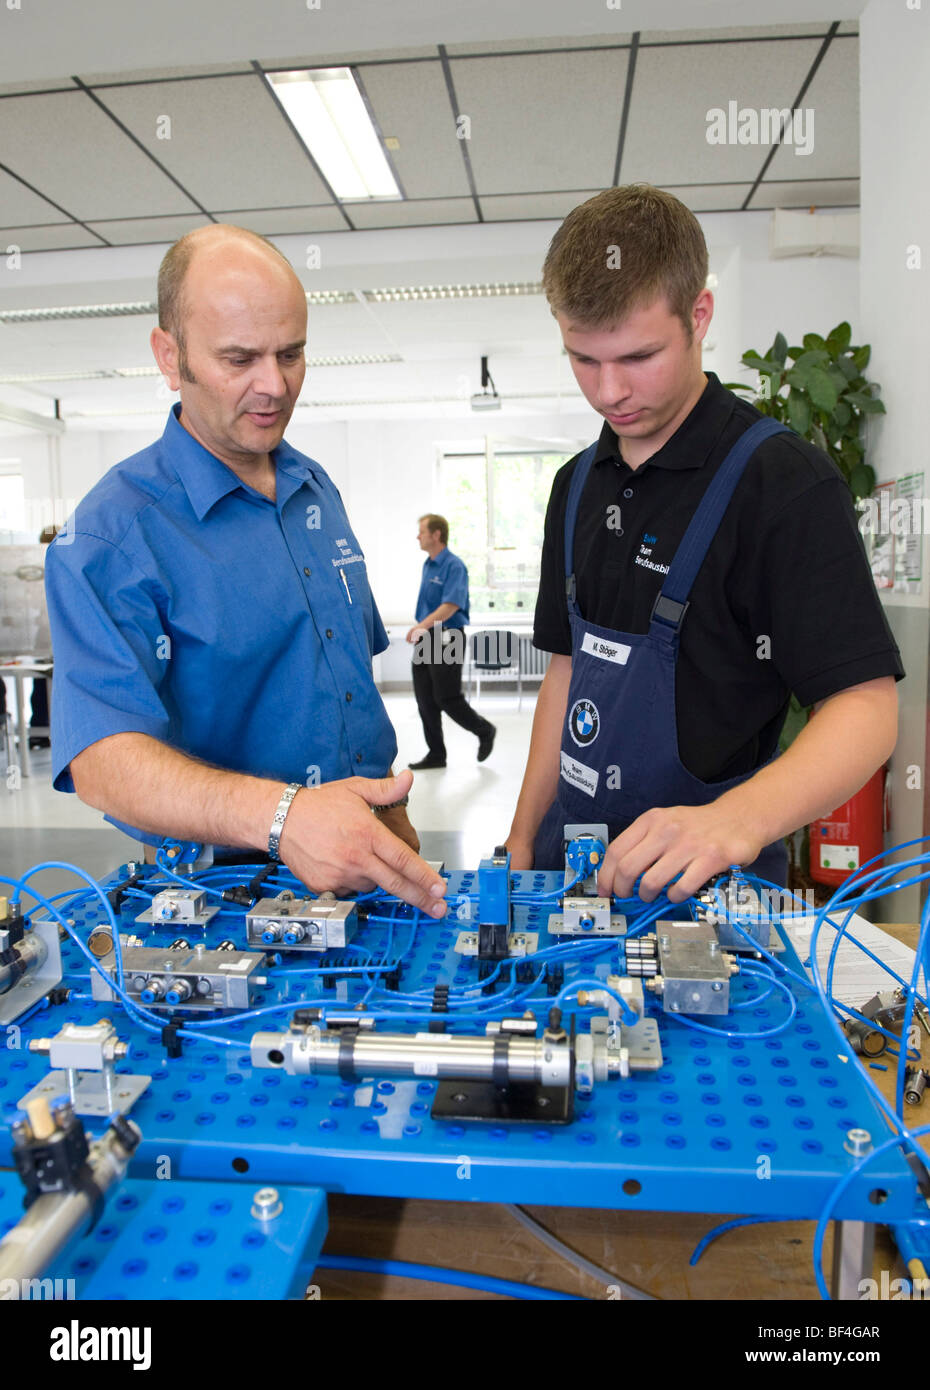 Electric Circuit Stock Photos Images Alamy Electrical Circuits Automotive Training And Master Andreas Fischer Explaining An To Apprentice In The Bmw